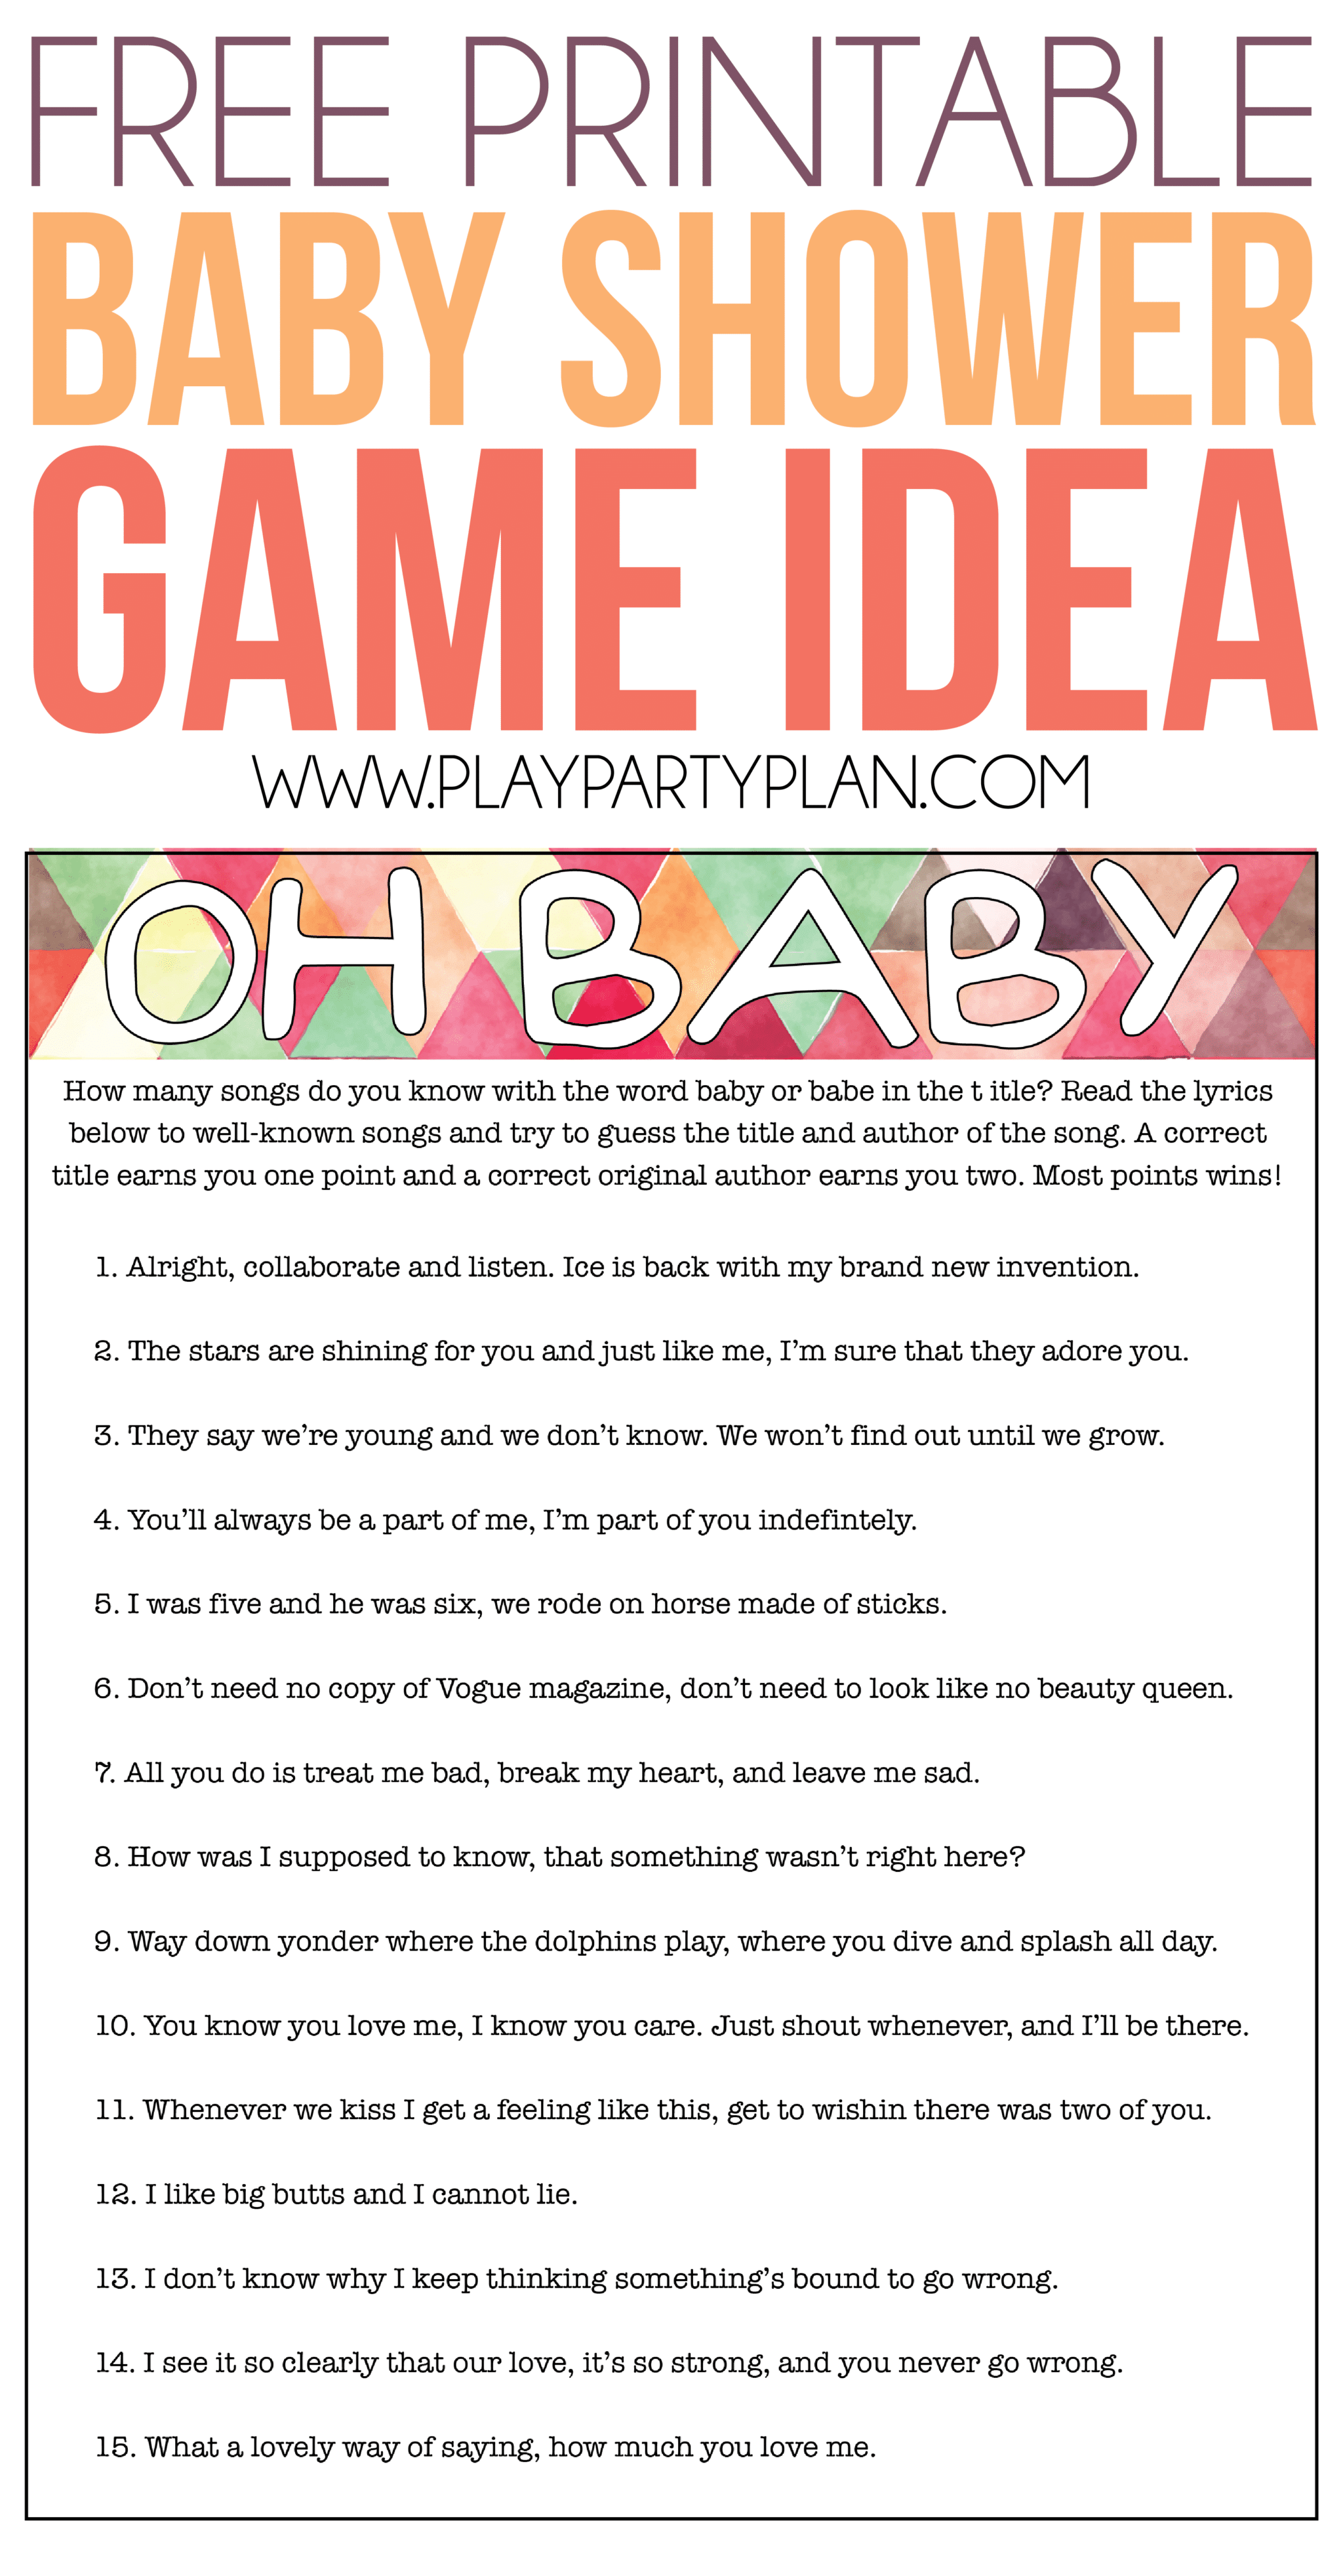 photograph about Baby Boy Shower Games Free Printable identified as Absolutely free Printable Little one Shower New music Guessing Recreation - Enjoy Occasion Application